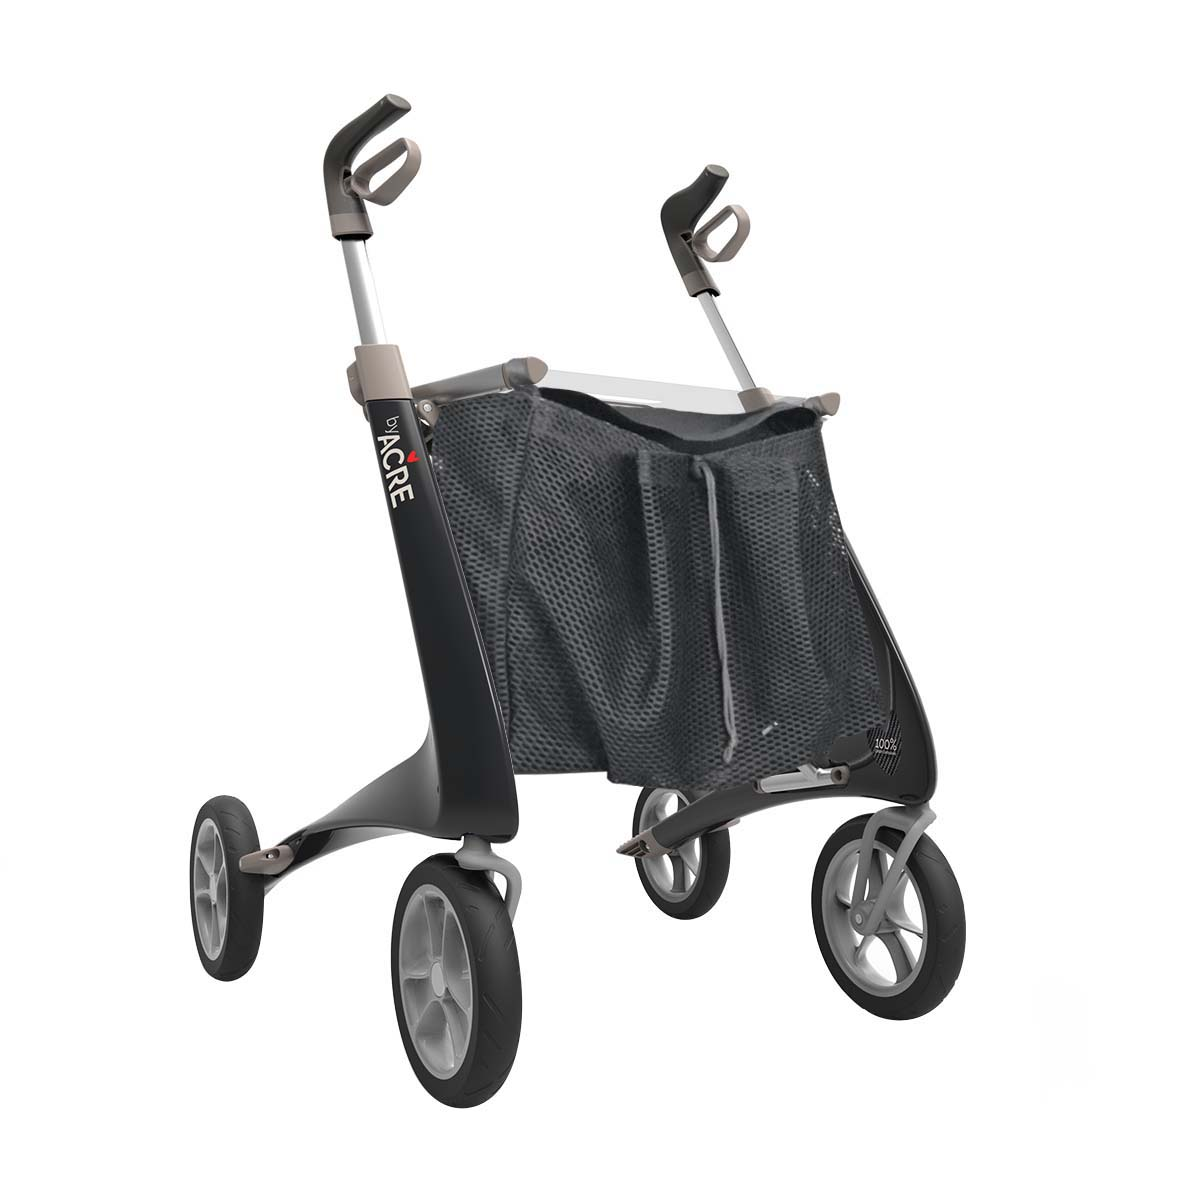 Sort Carbon Ultralight rollator med indkøbsnet